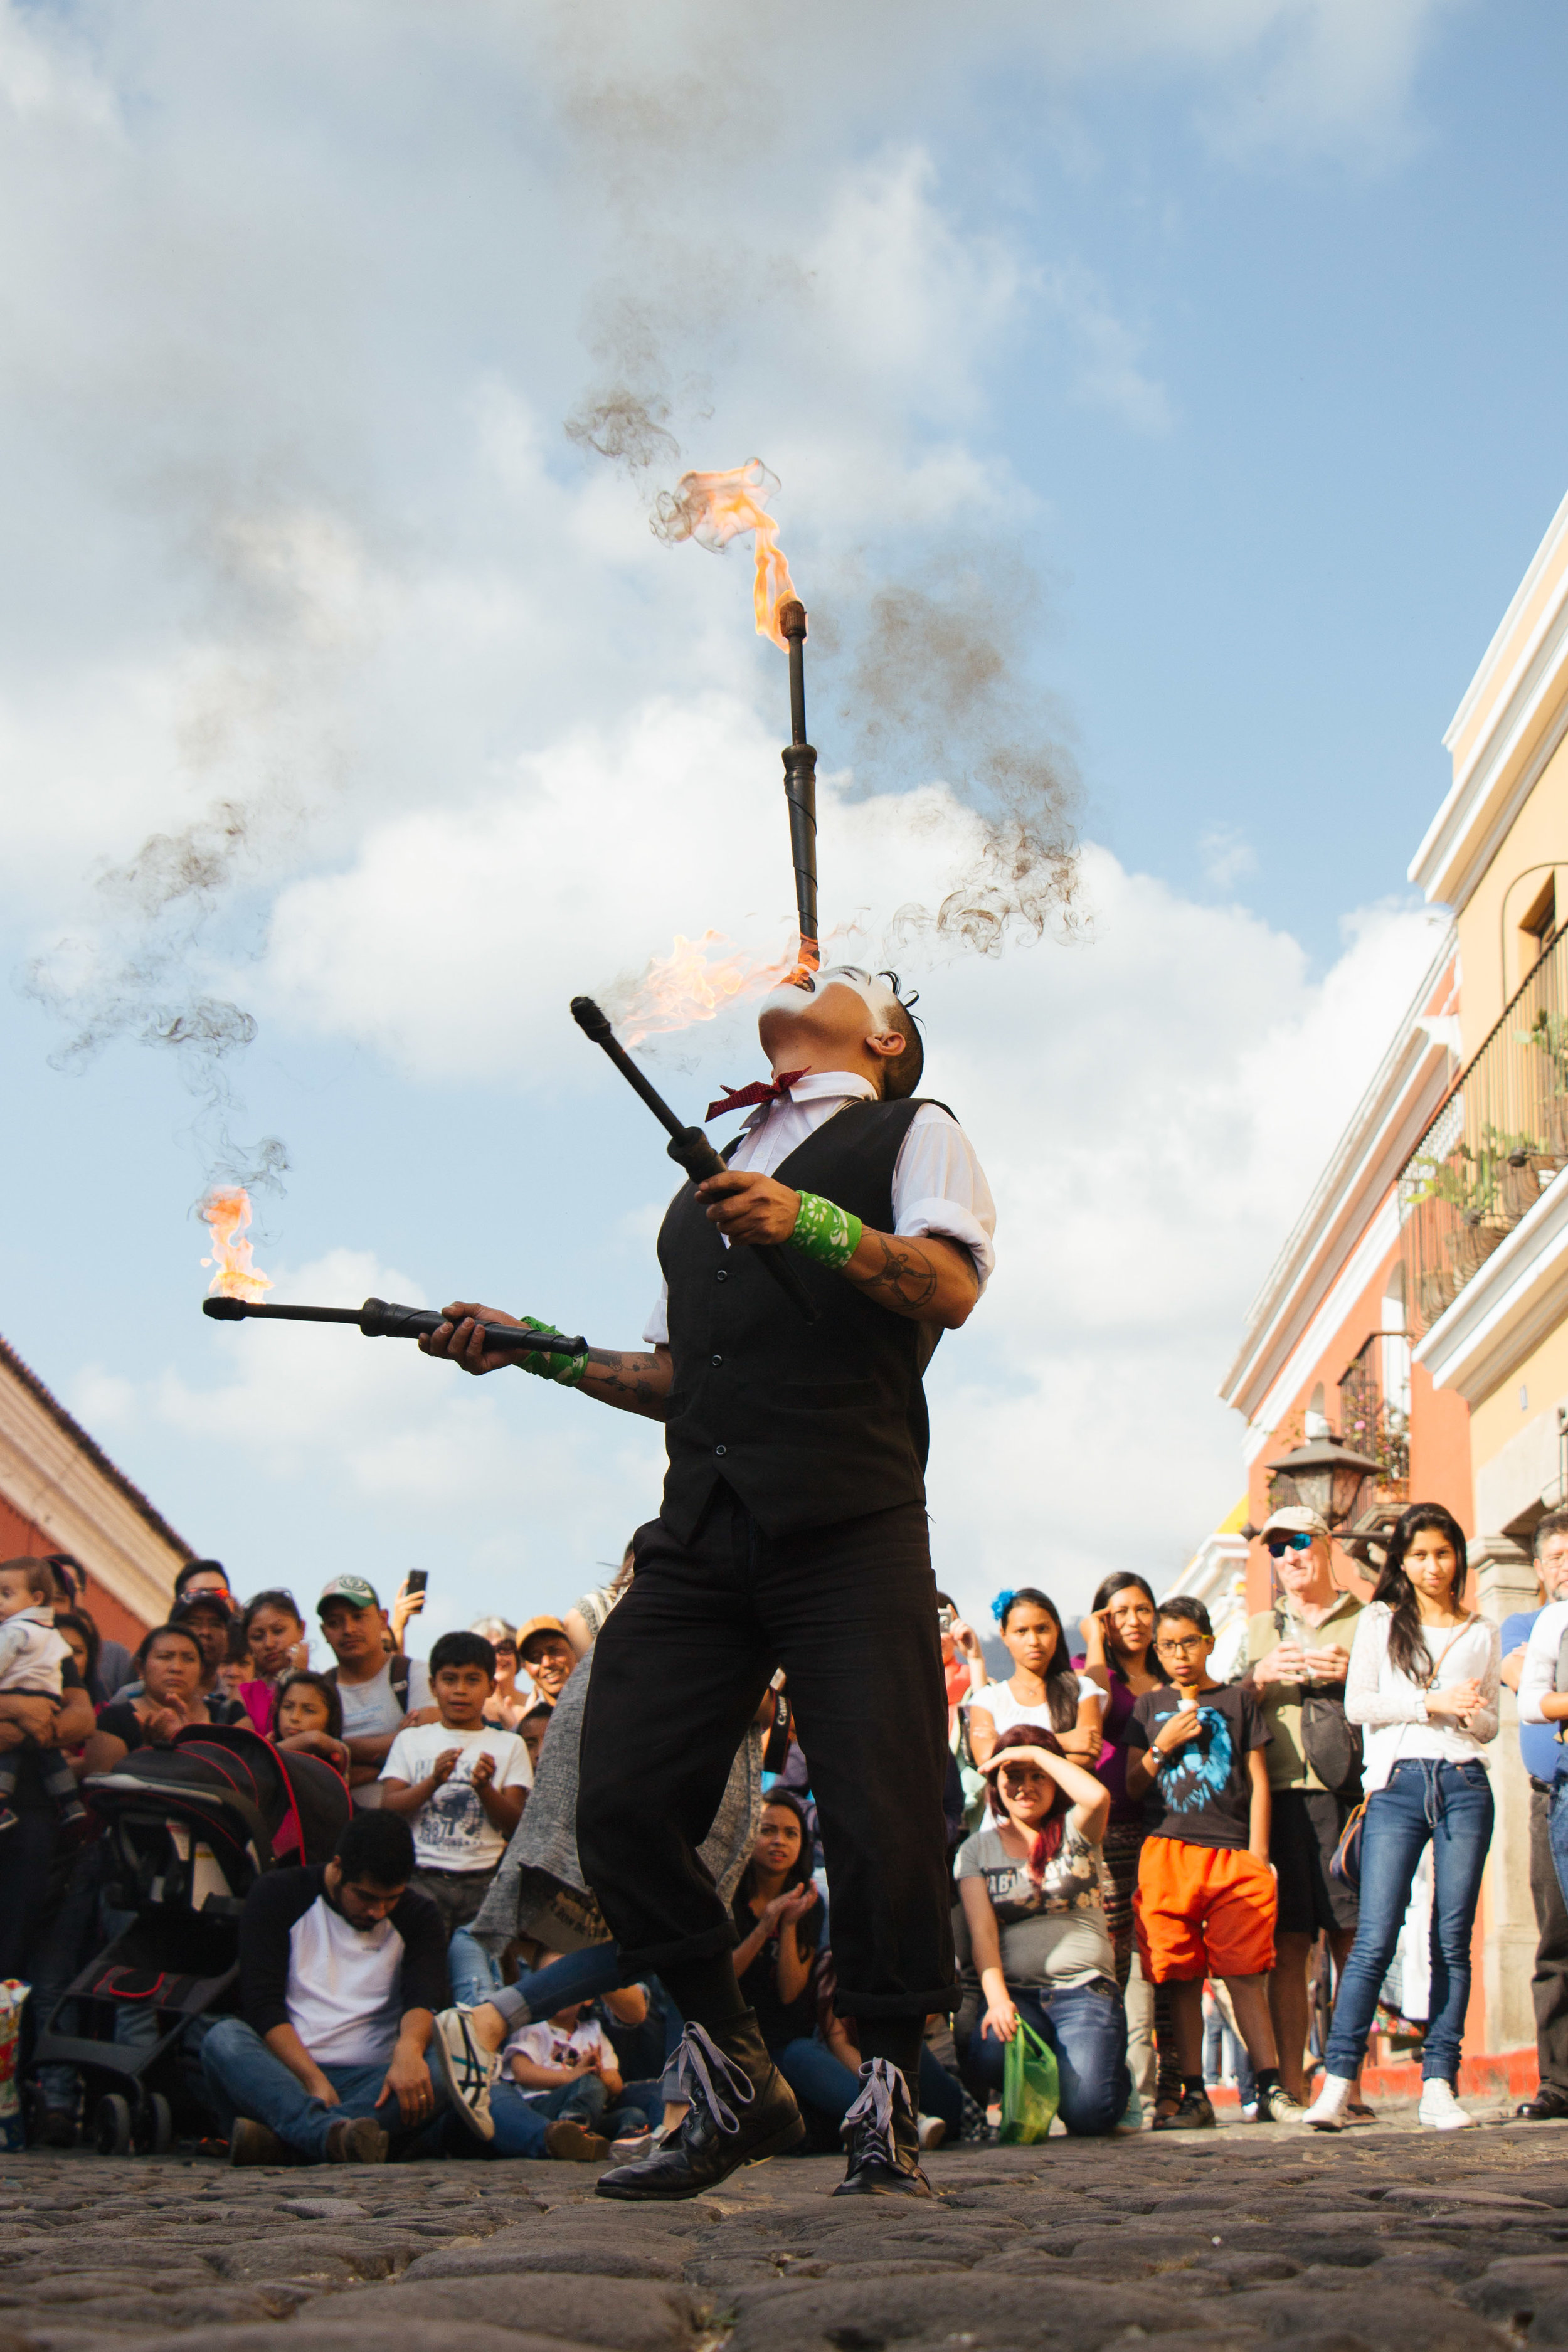 JUAN ESTUARDO TACEN PEREZ BALANCES ONE FIRE TORCH ON HIS FOREHEAD WHILE JUGGLING TWO ADDITIONAL FIRE TORCHES ON 5A AVENIDA NORTE IN ANTIGUA, GUATEMALA JAN. 7. TACEN'S STREET THEATRE PERFORMANCE LASTED ONE HOUR.